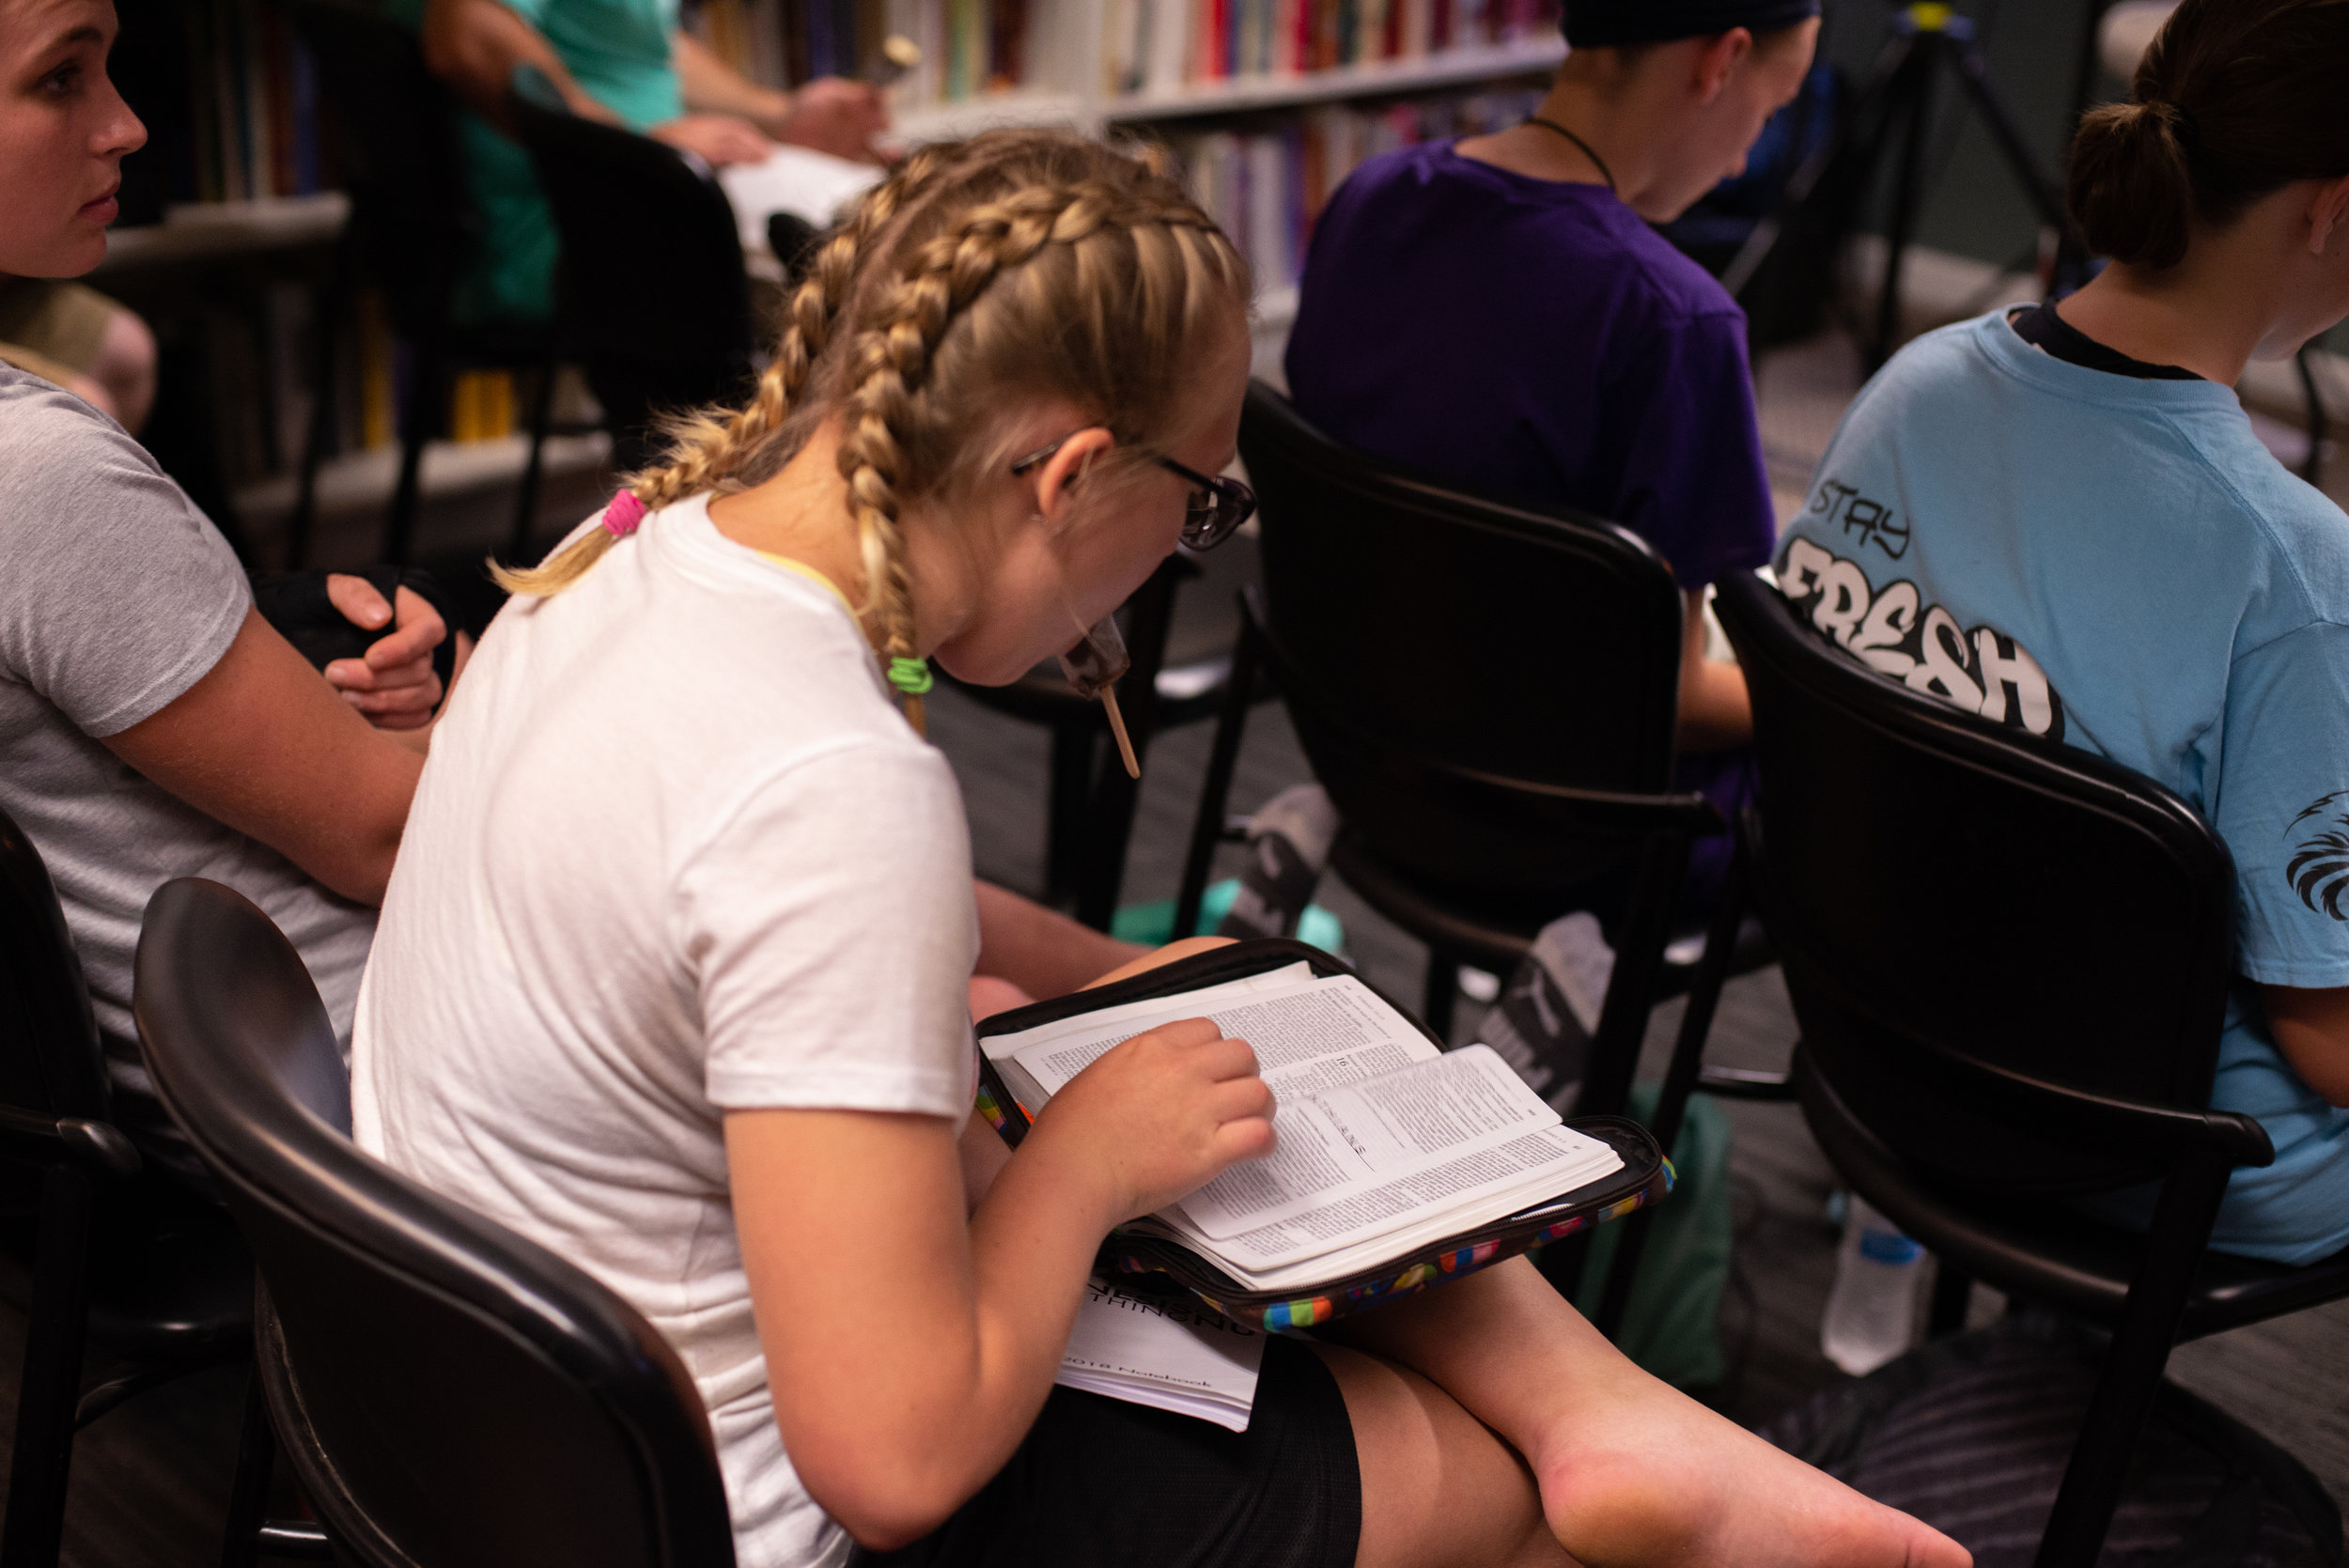 Multiple SLAM leaders noted how impressed they were with the students'enthusiasm and desire to learn the Bible!